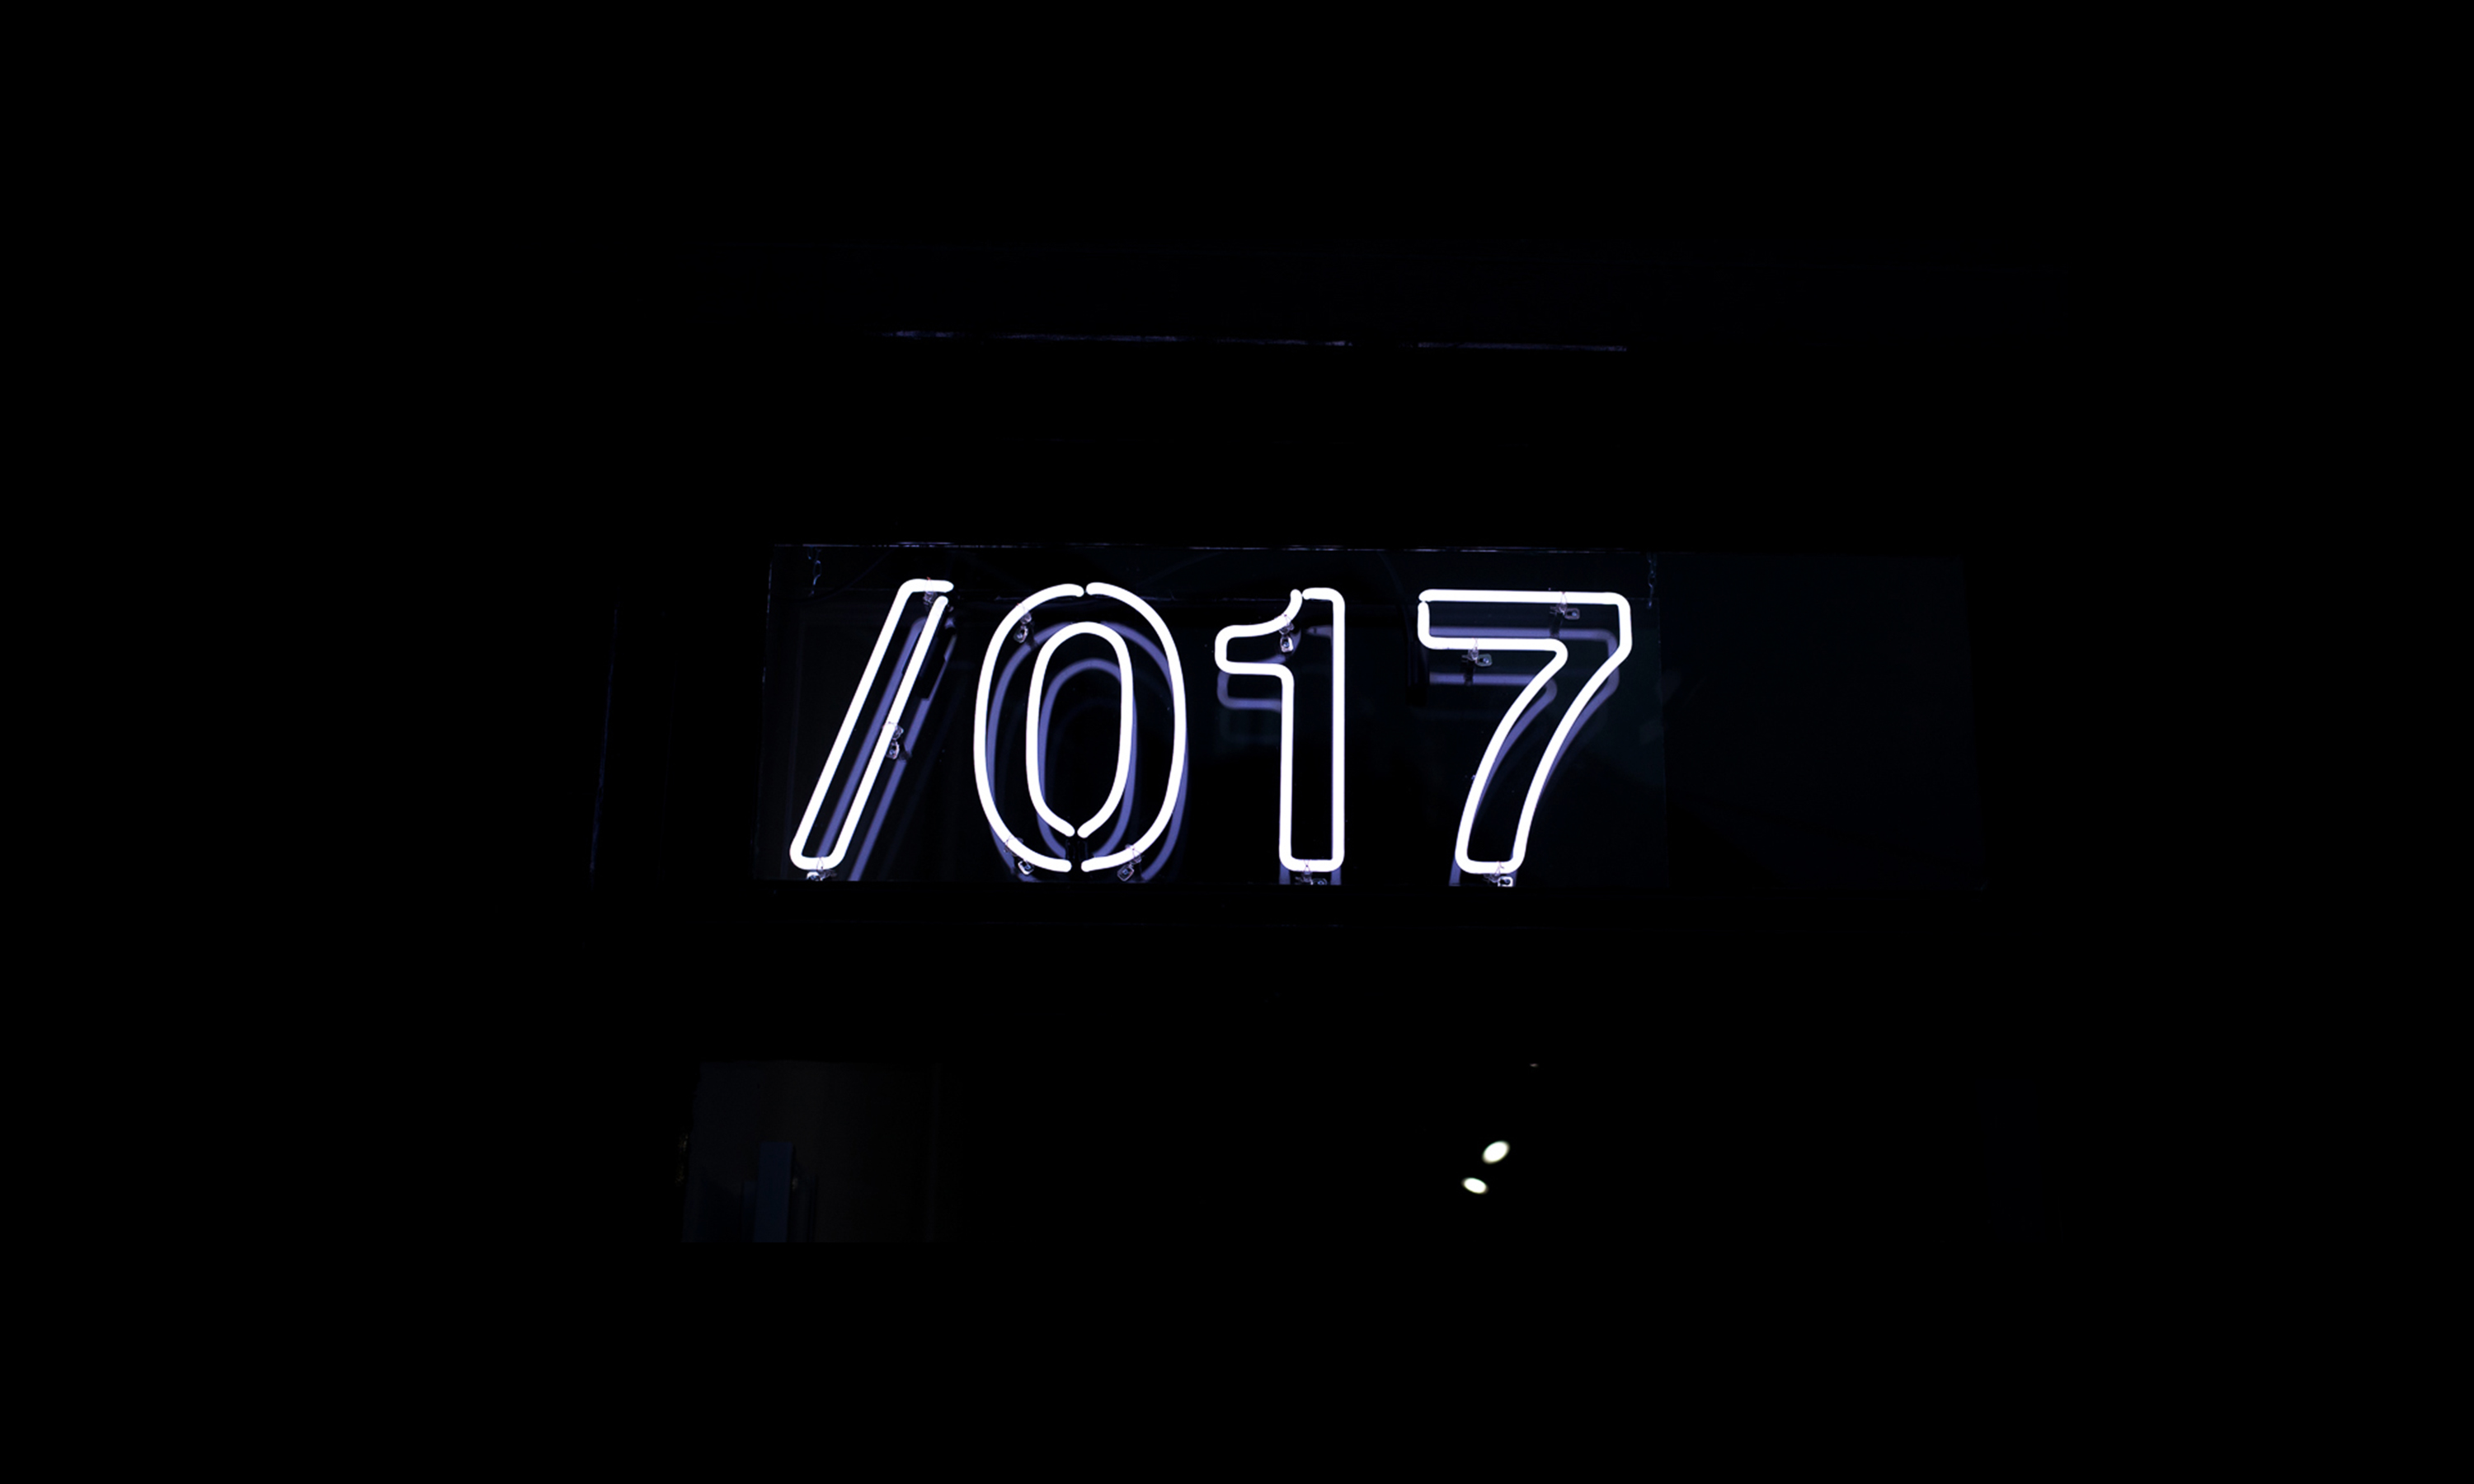 017 branding on neon signage in gastown vancouver